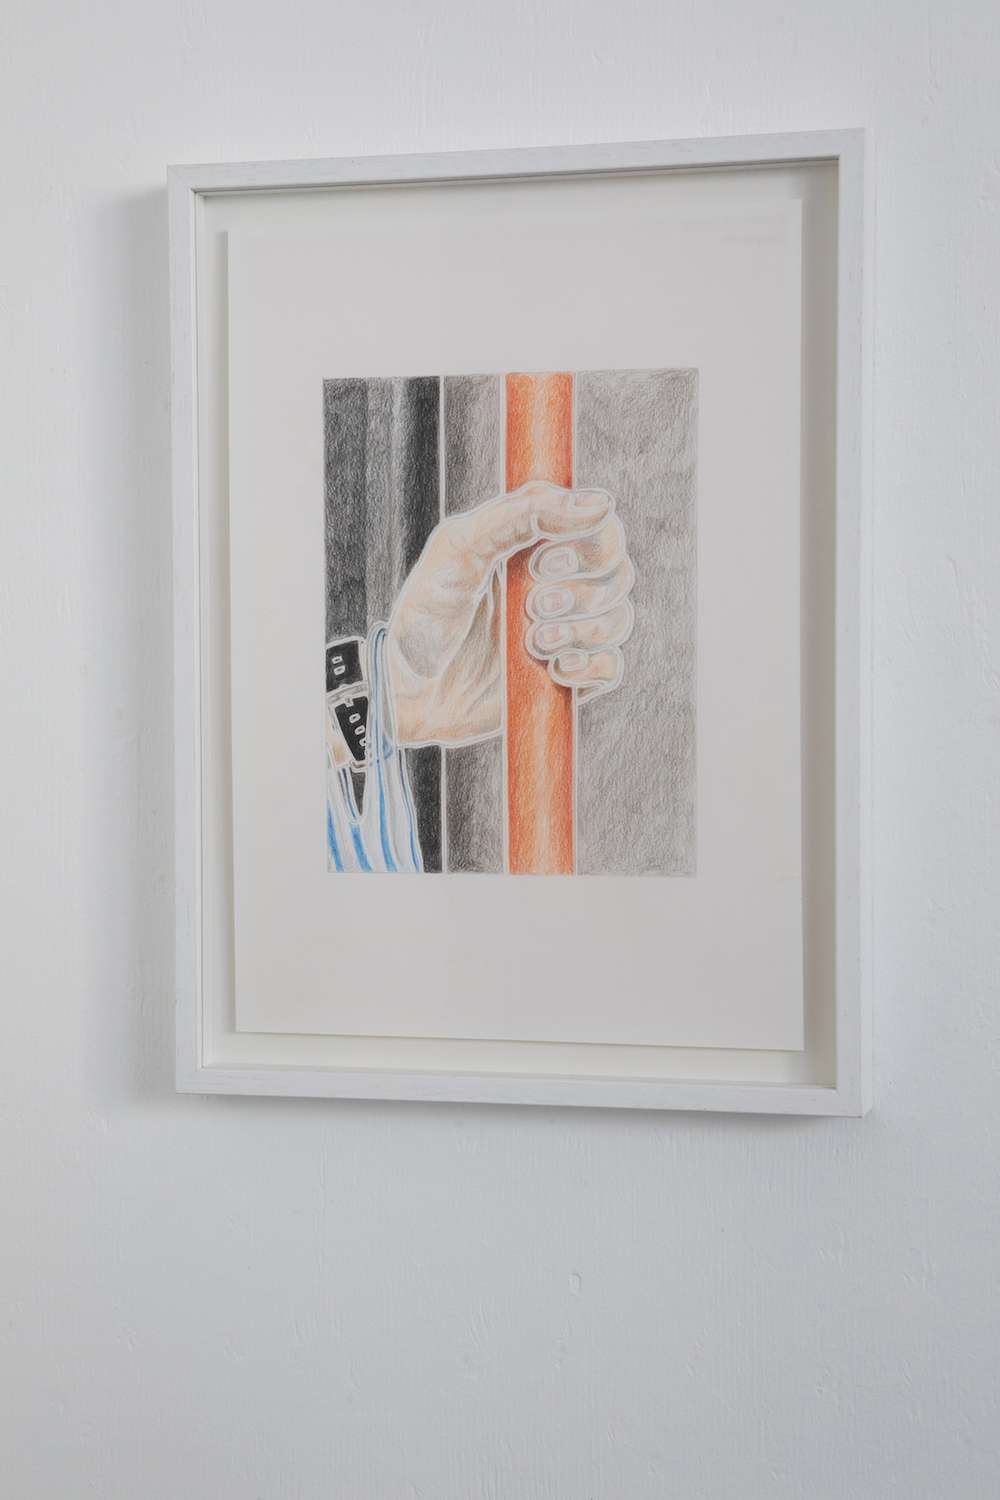 Milly Peck, A Matter of Routine IV, 2020. Coloured pencil on 130gsm acid free paper. Framed. 42 x 29.7 cm.